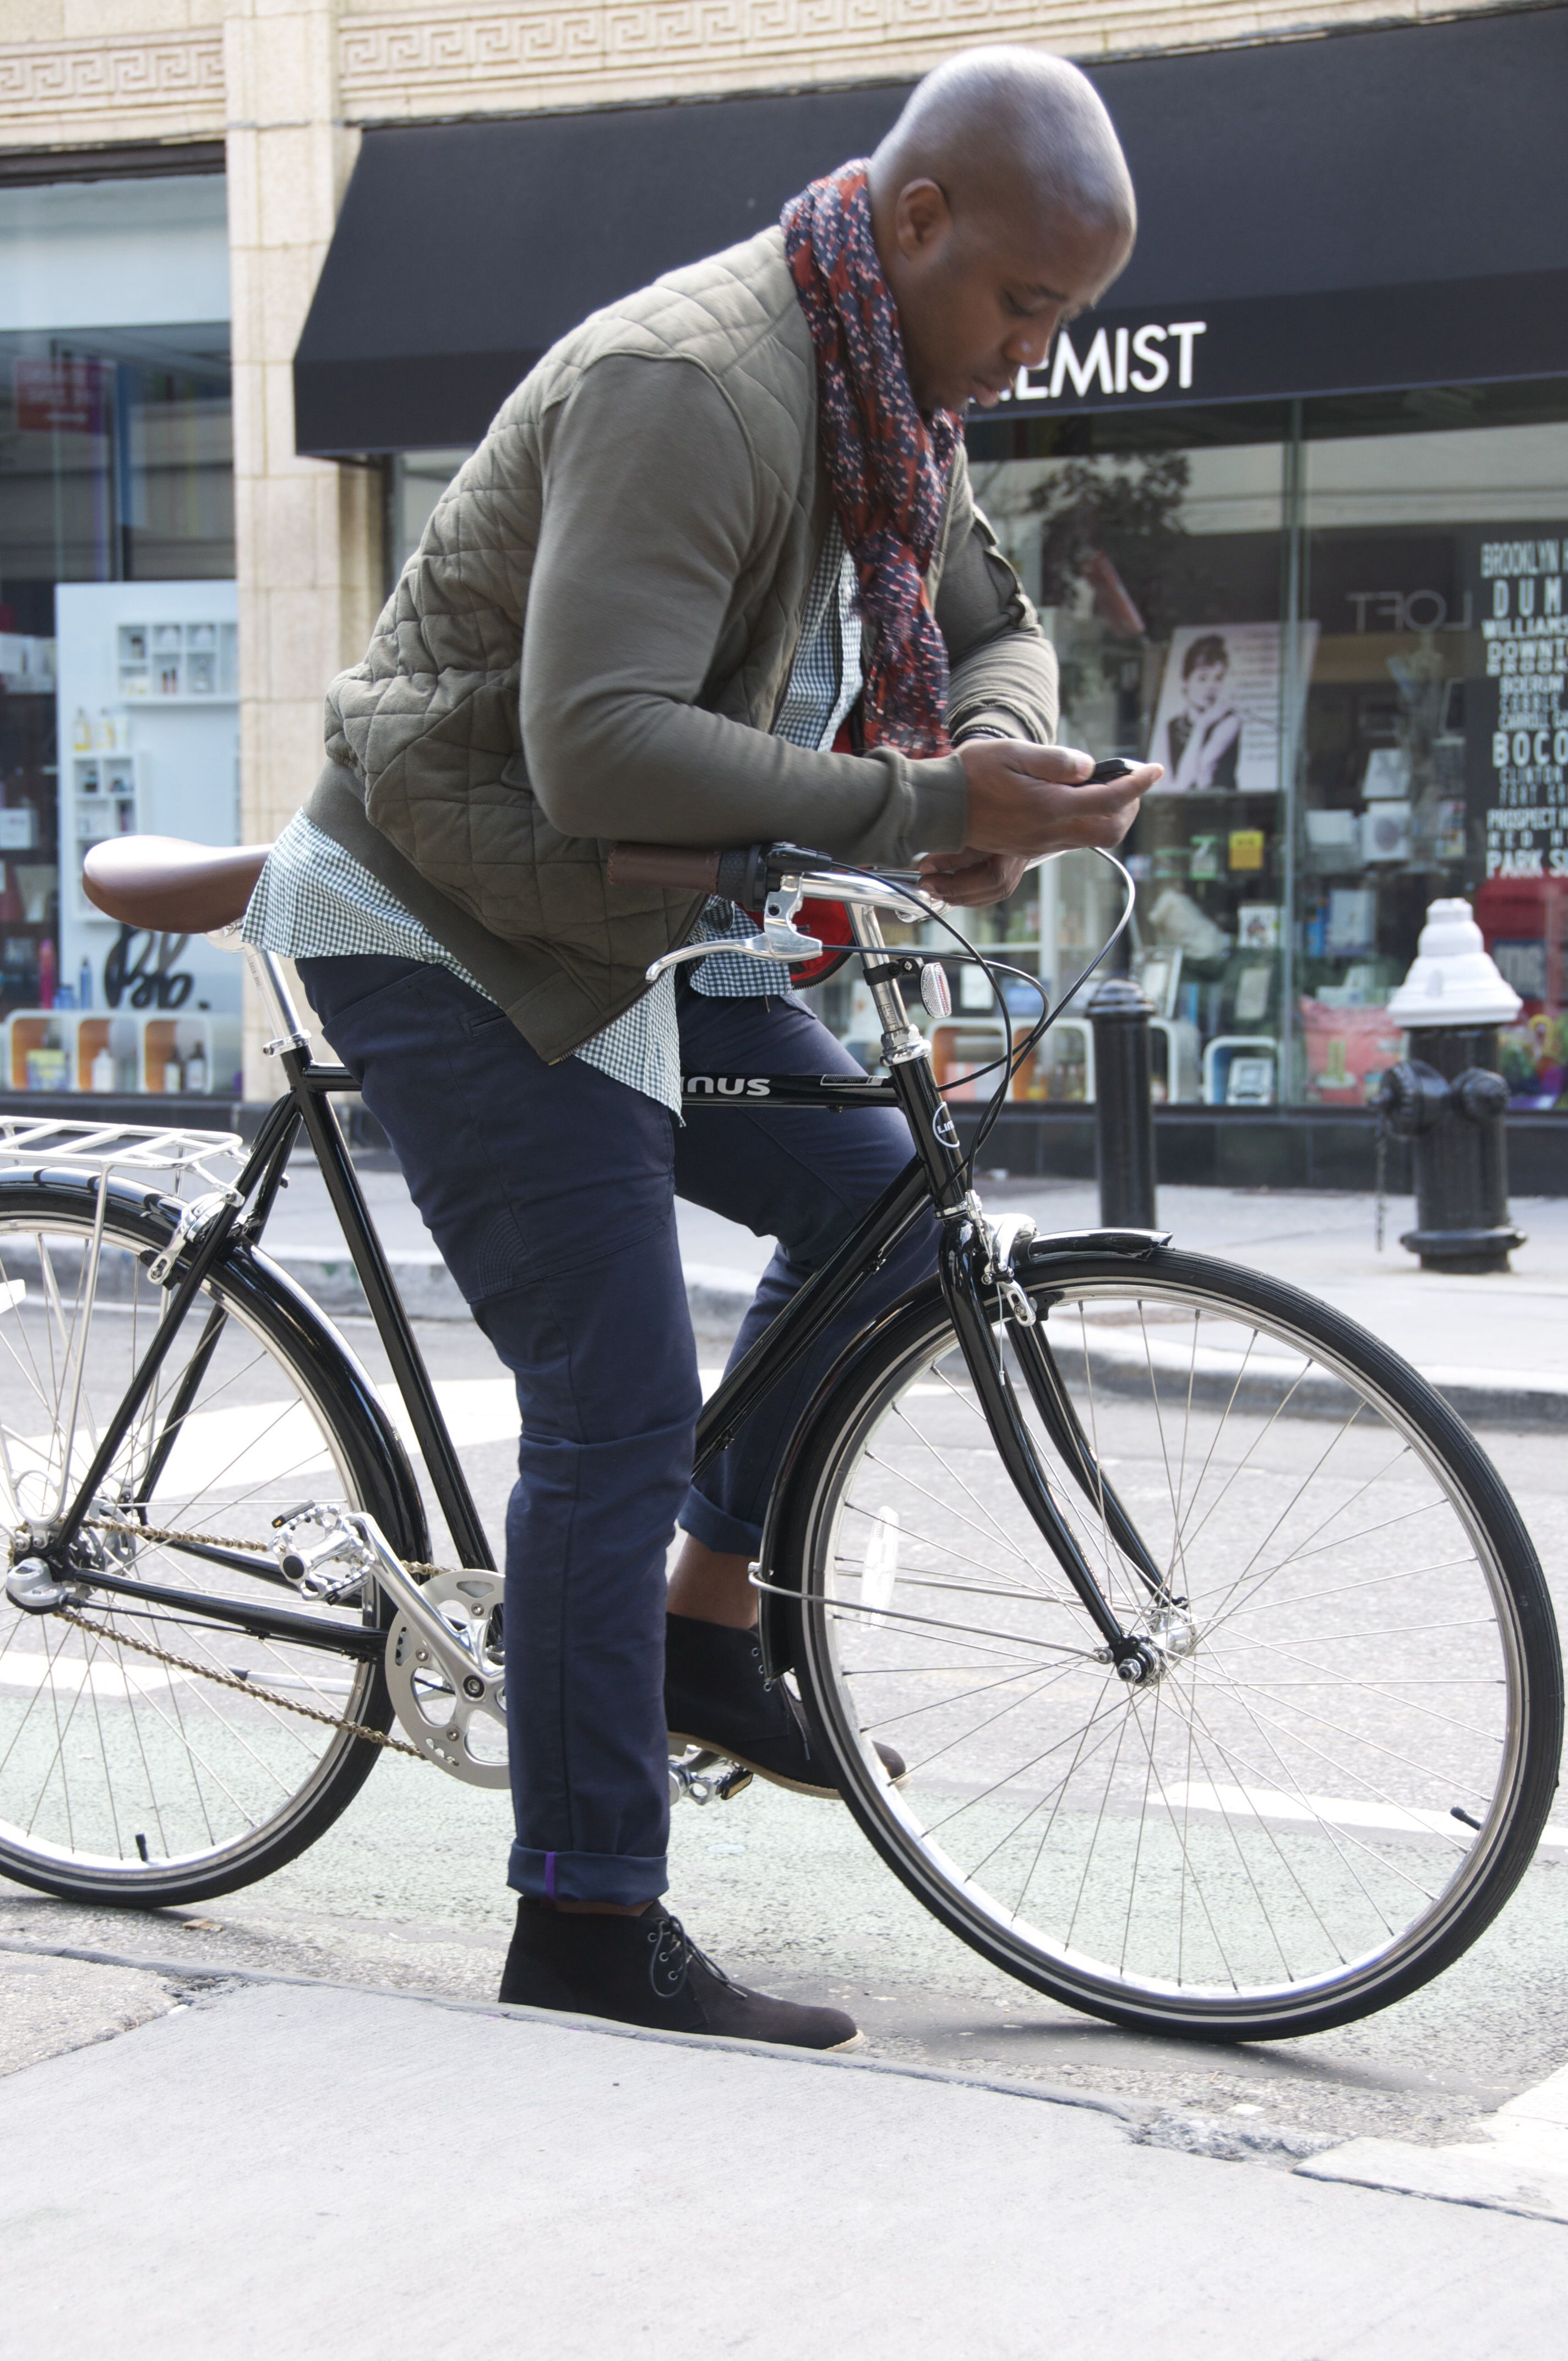 Osloh bike jeans - style with comfort and function. Wholesale prices during 2013 Kickstarter campaign